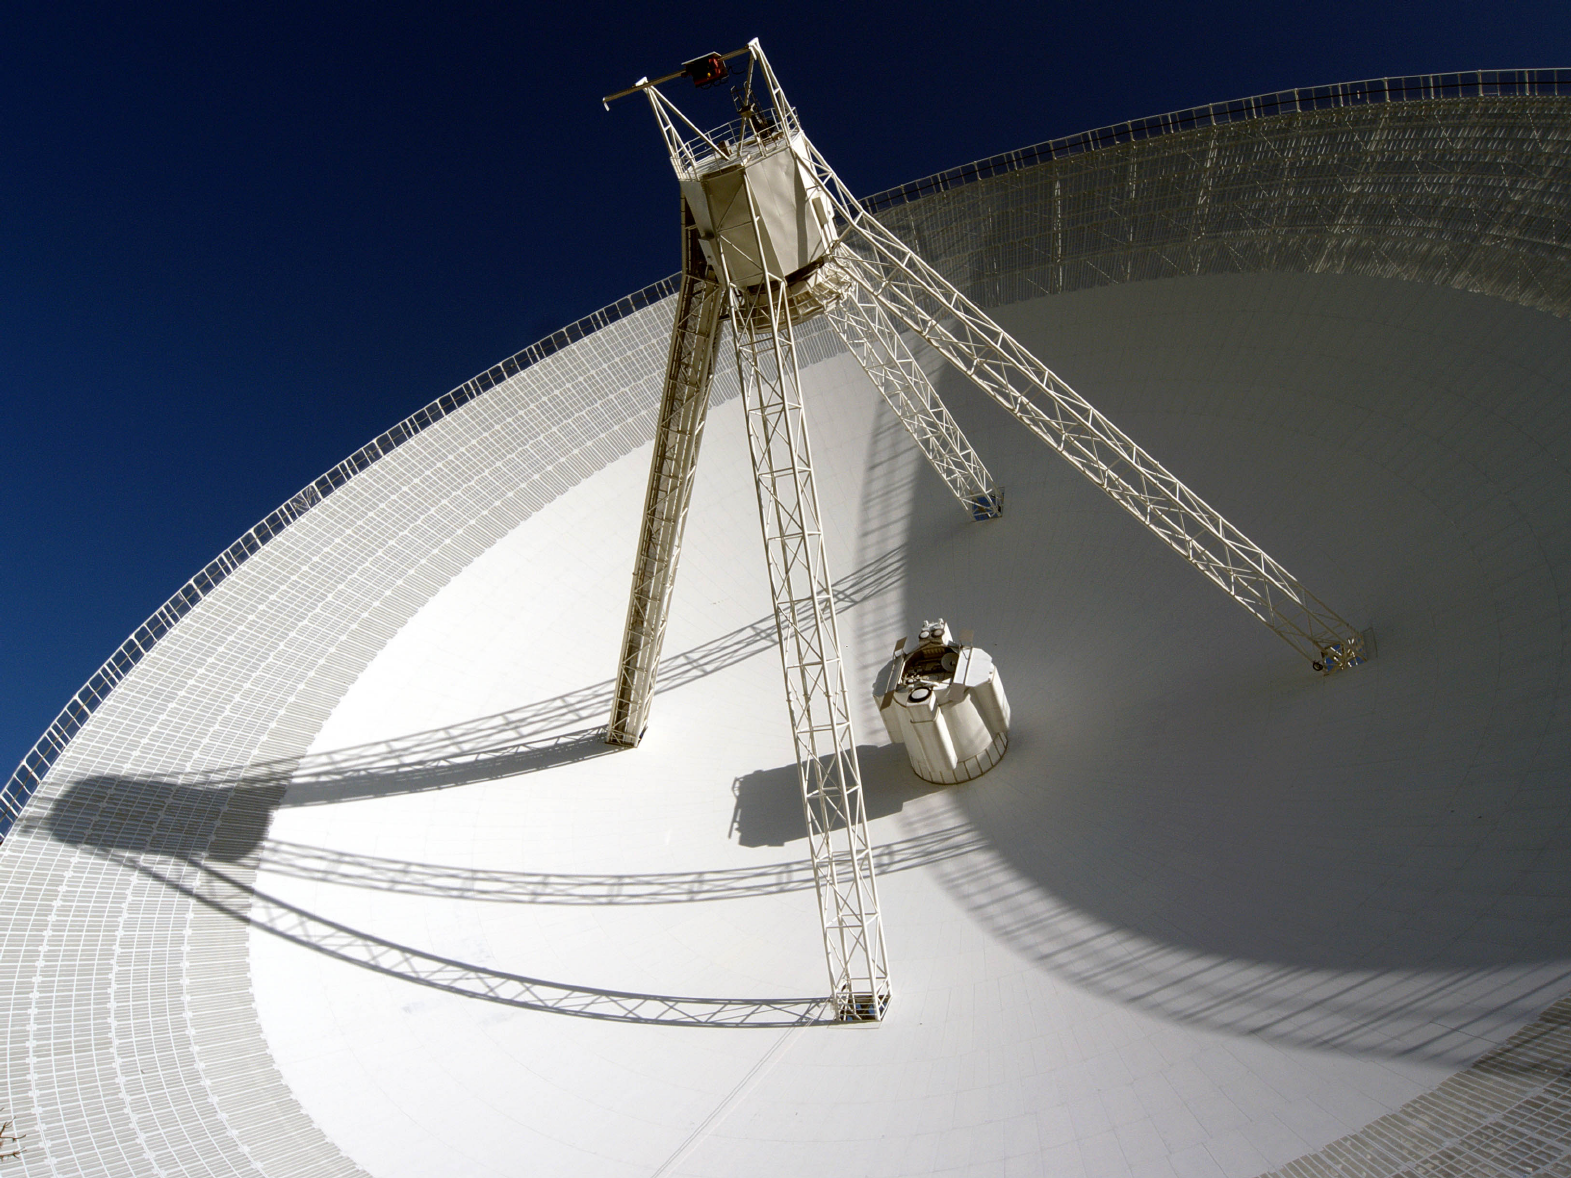 information_for_astronomers:user_guide:dish.png